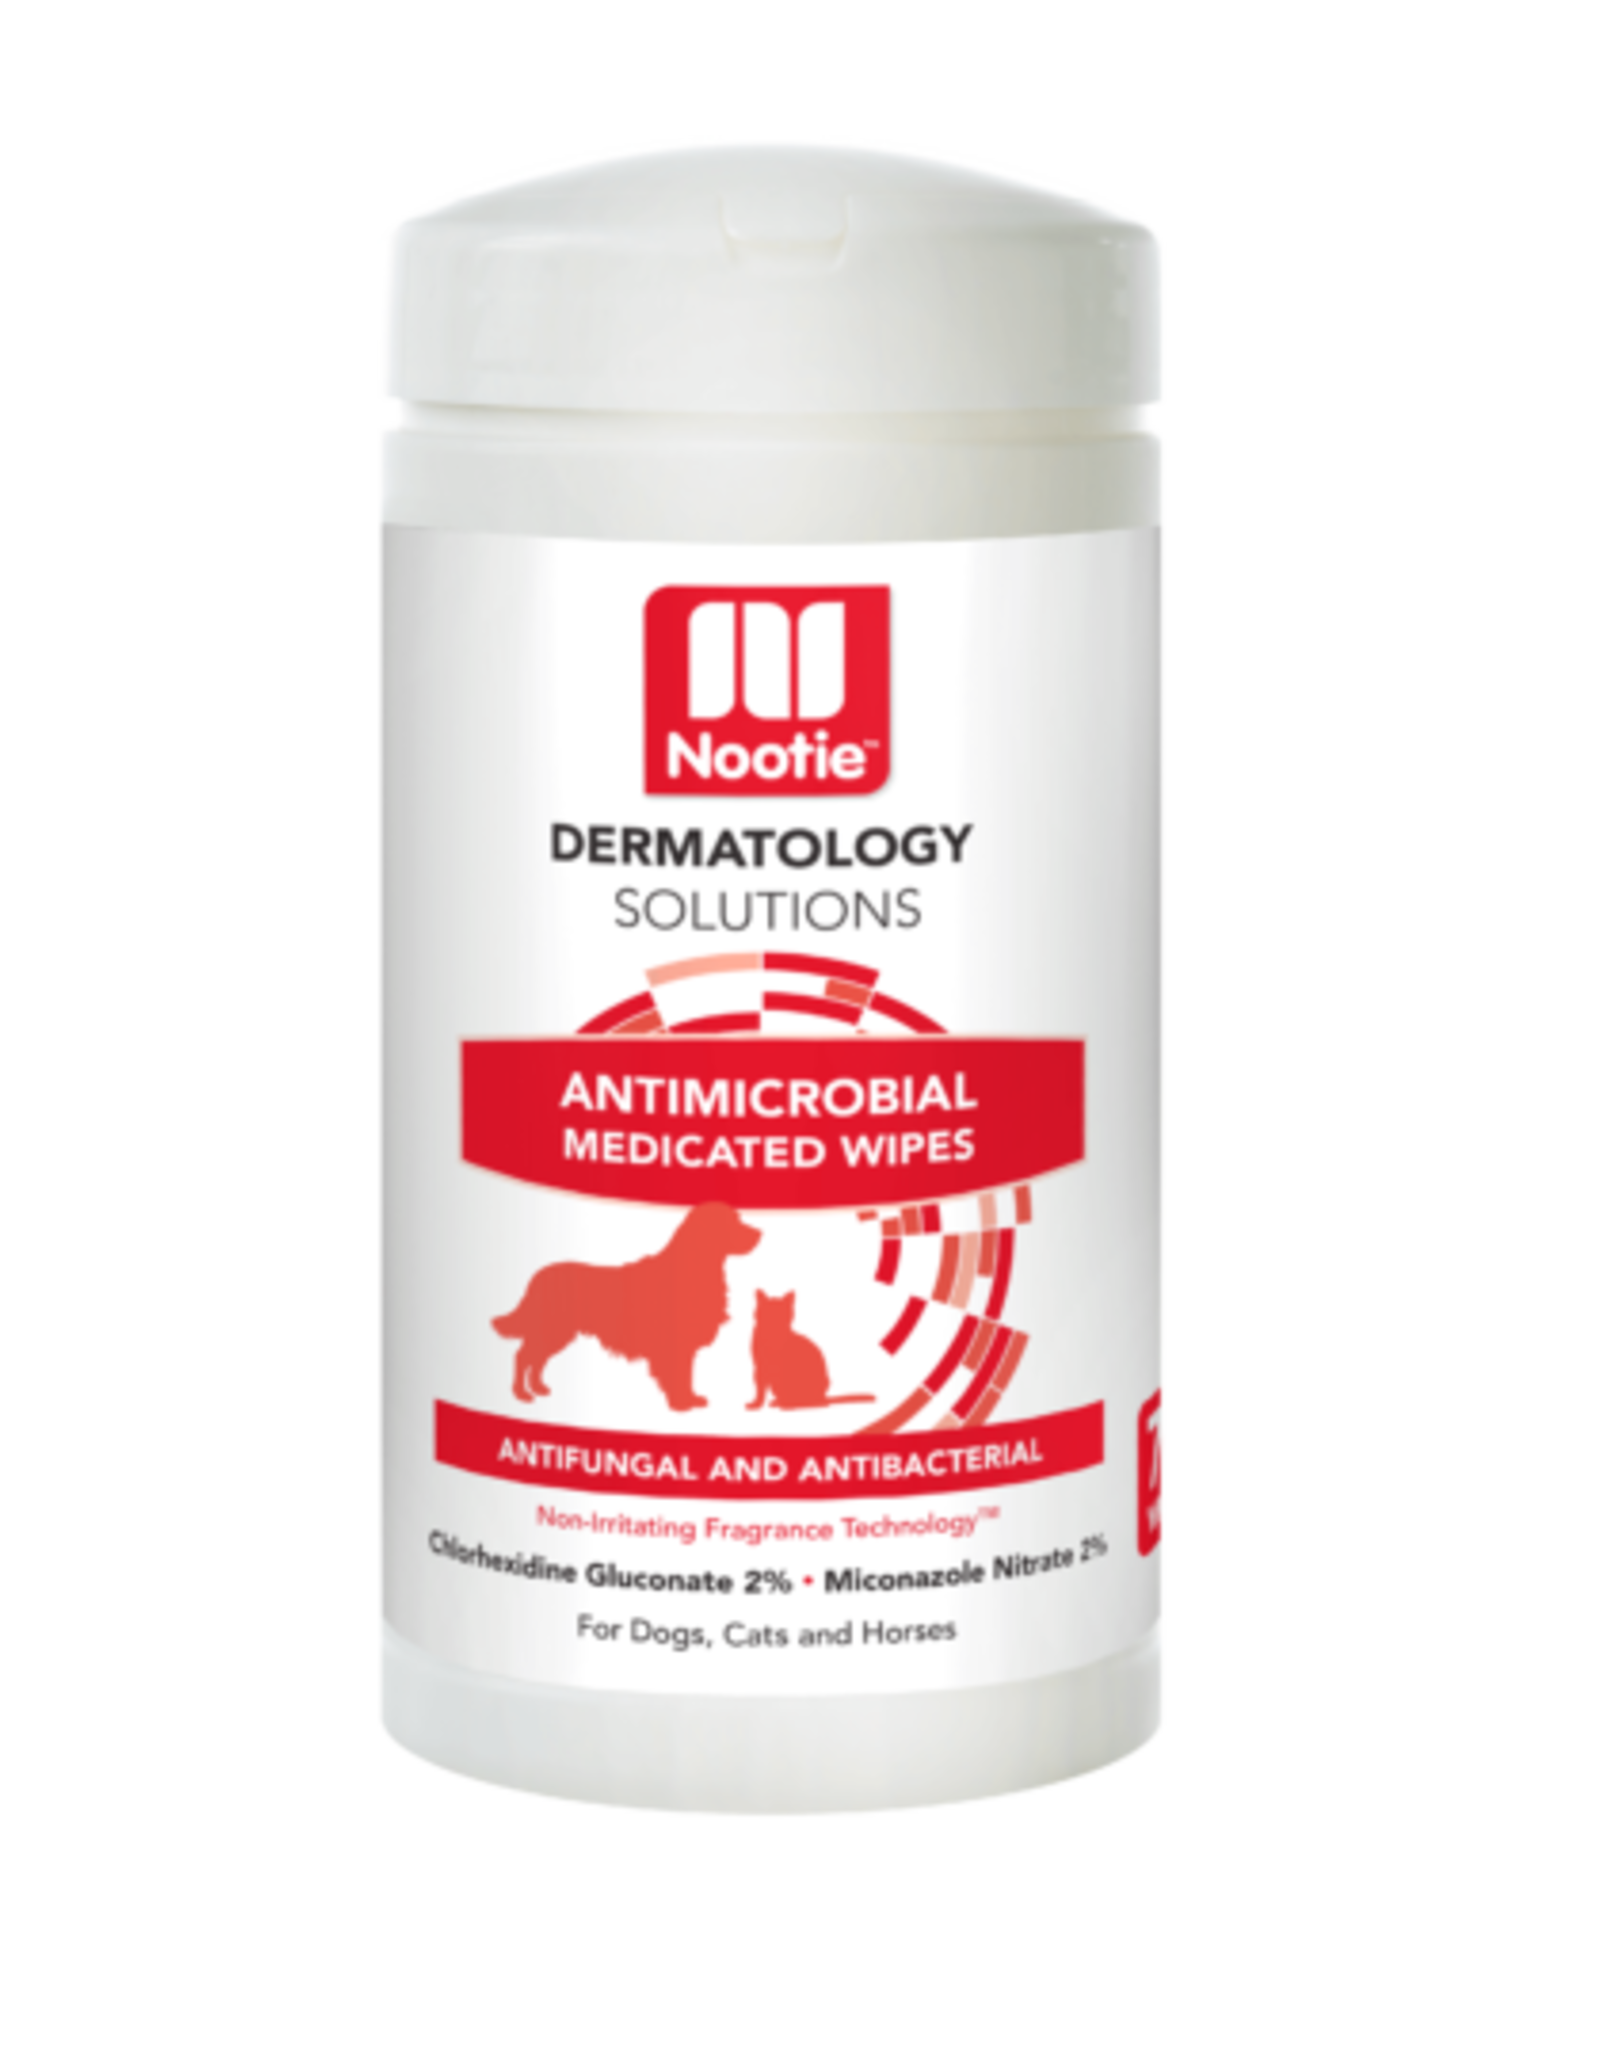 Nootie Nootie Dermatology Solutions Antimicrobial Medicated Wipes Antifungal and Antibacterial for Dogs Cats Horses70ct